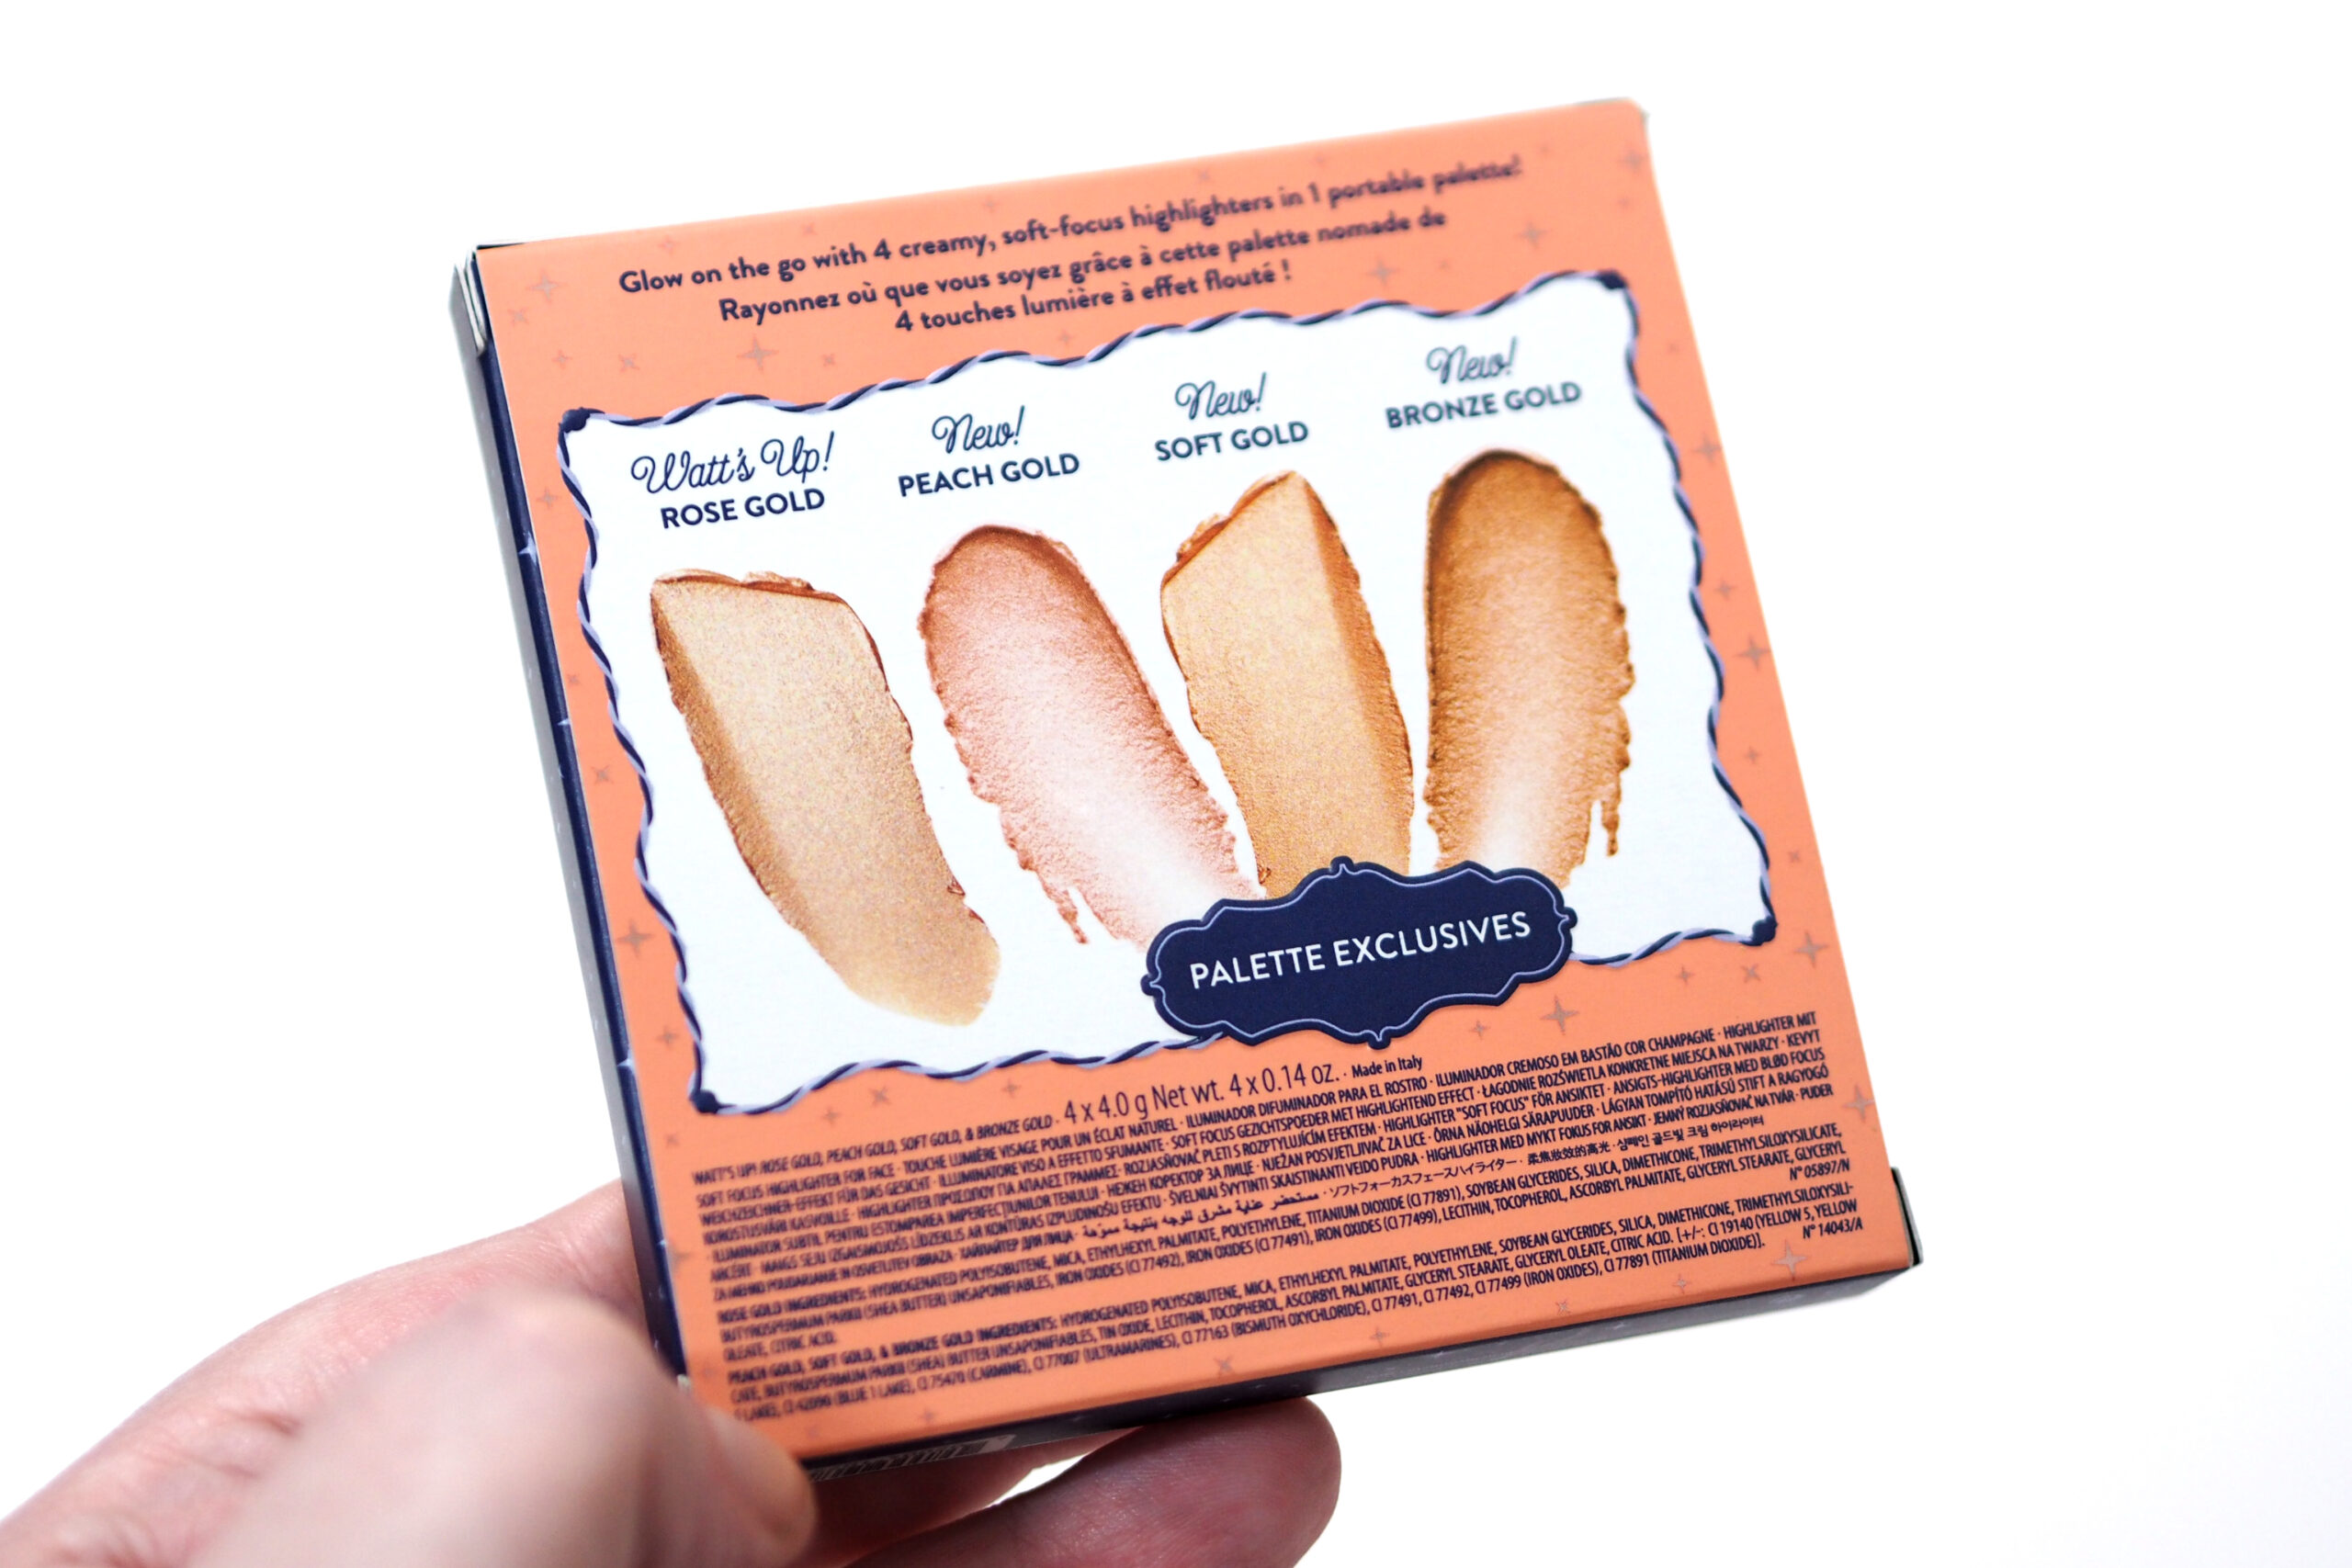 Benefit Miss Glow It All Highlighter Palette Review / Swatches